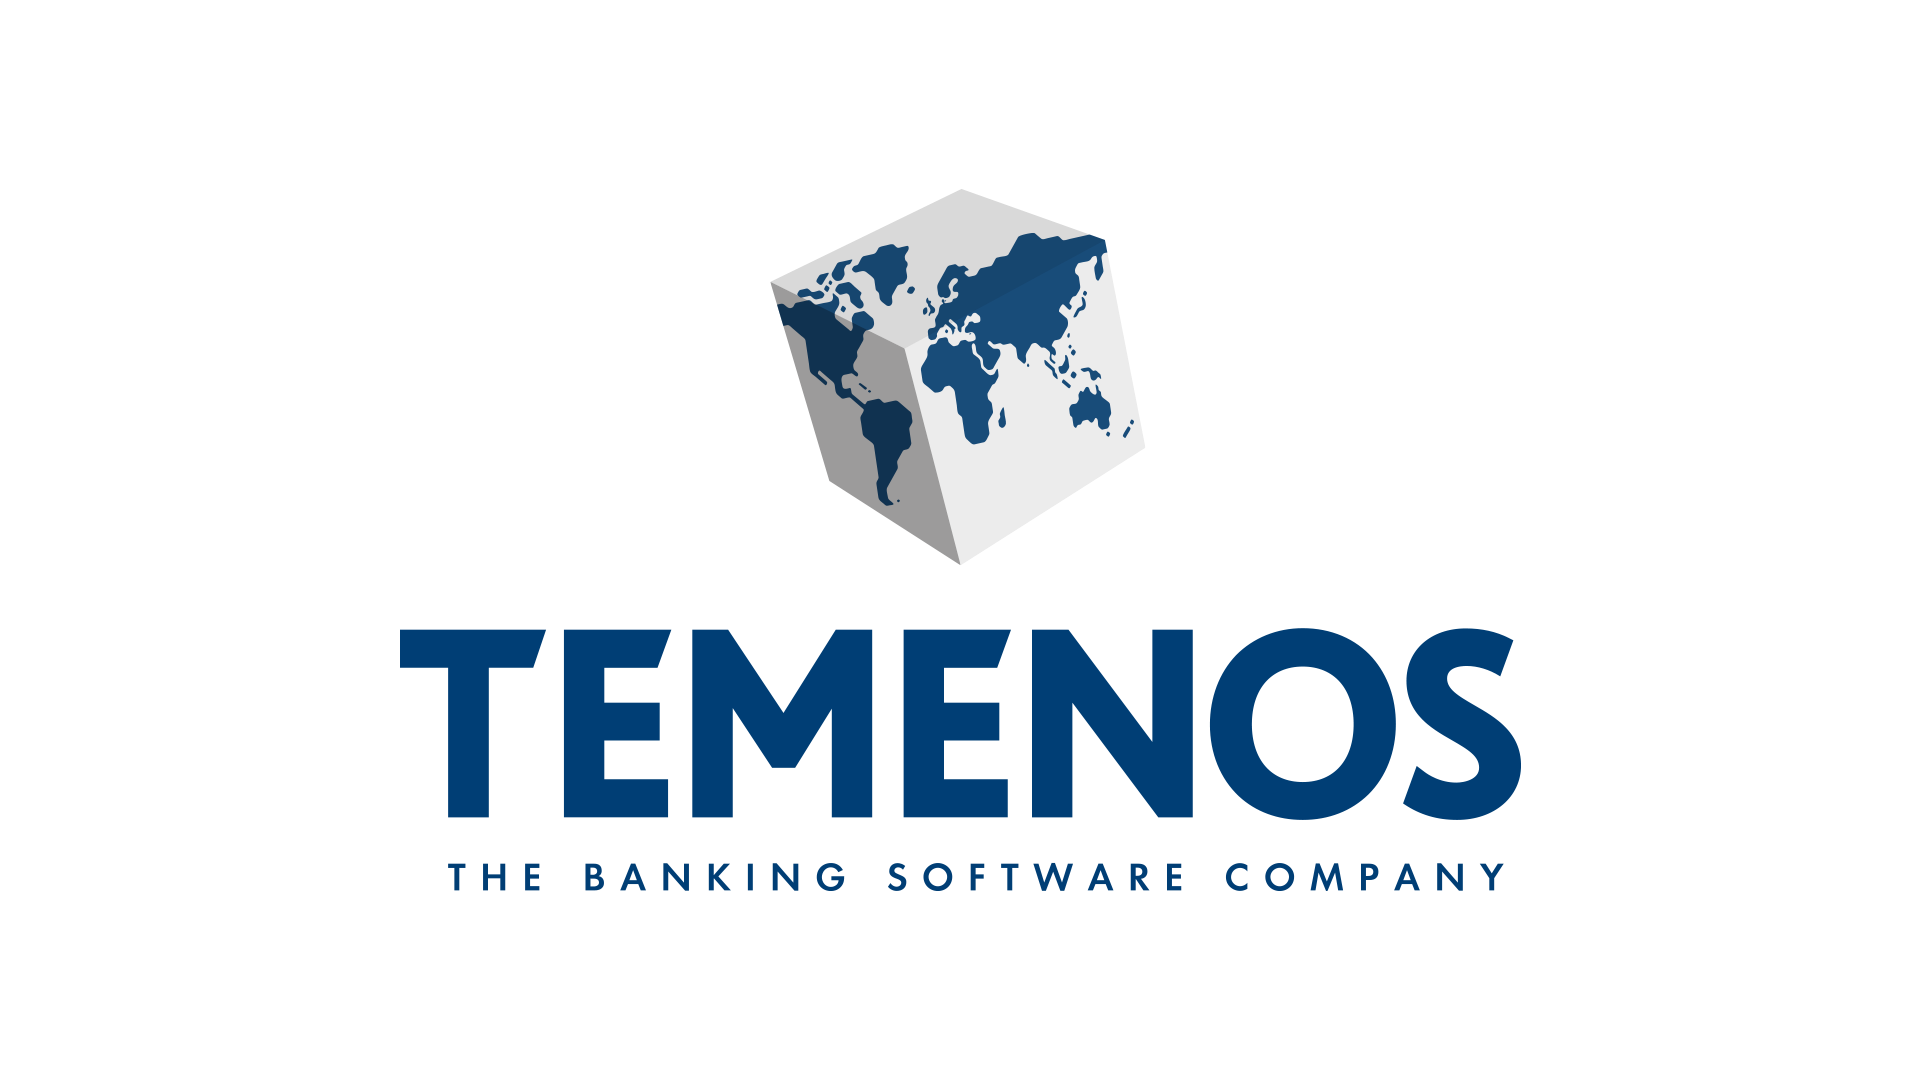 Temenos the Only Vendor Recognized as a Global Power Seller, a Top Global Player and a Top Global Cross-Seller in the 2021 Deal Survey, with 3X the Number of New Named Deals of the Next Vendor Surveyed